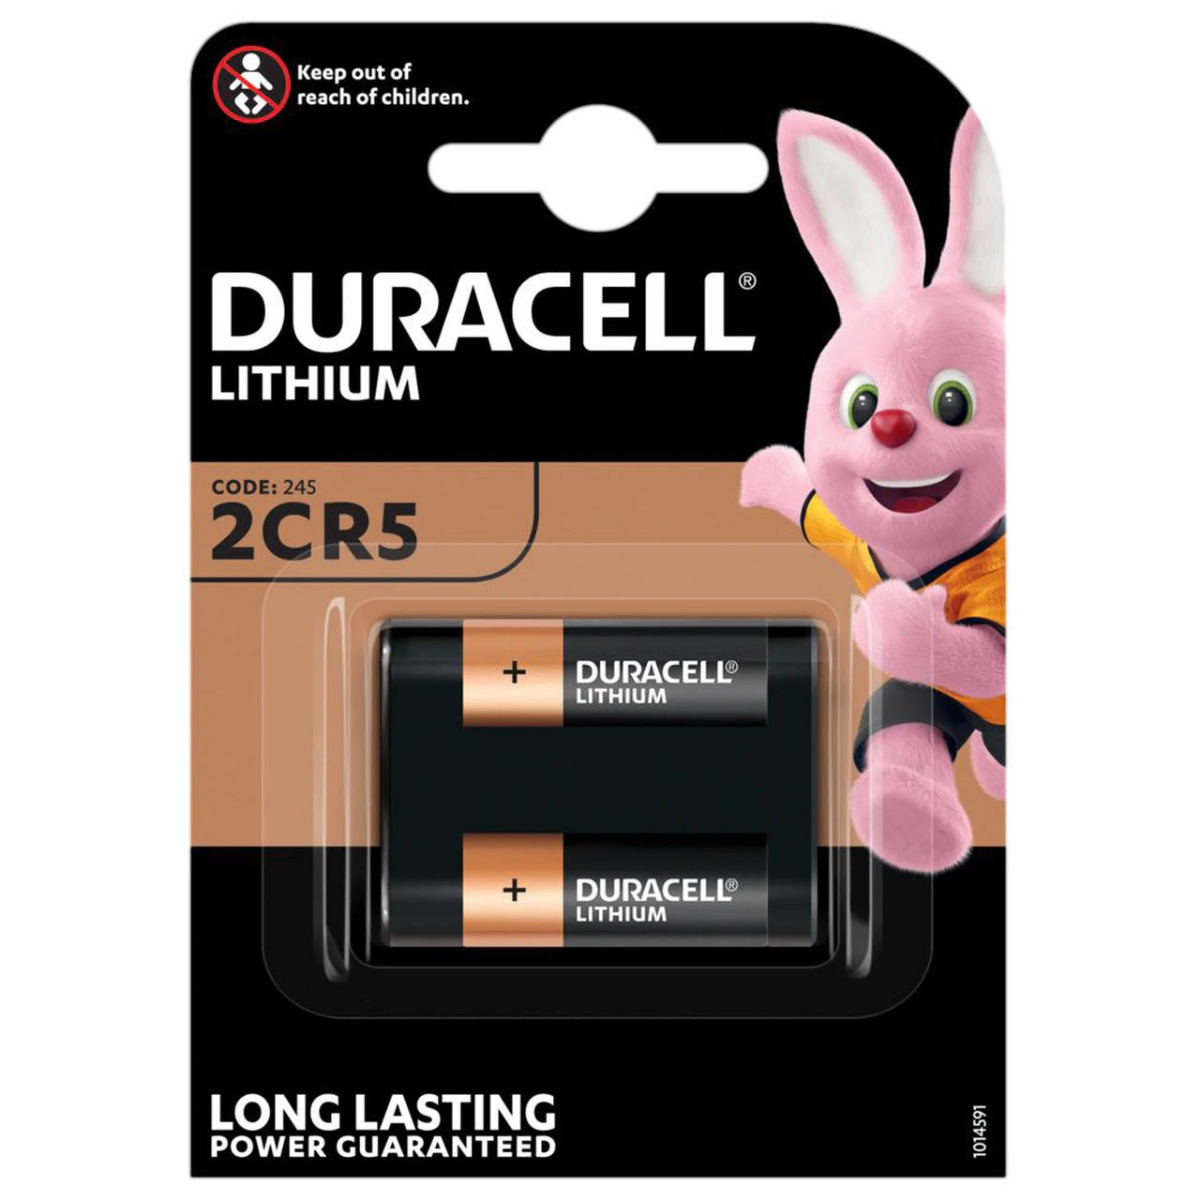 Duracell Lithium DL245 (2CR5) Battery   1 Pack